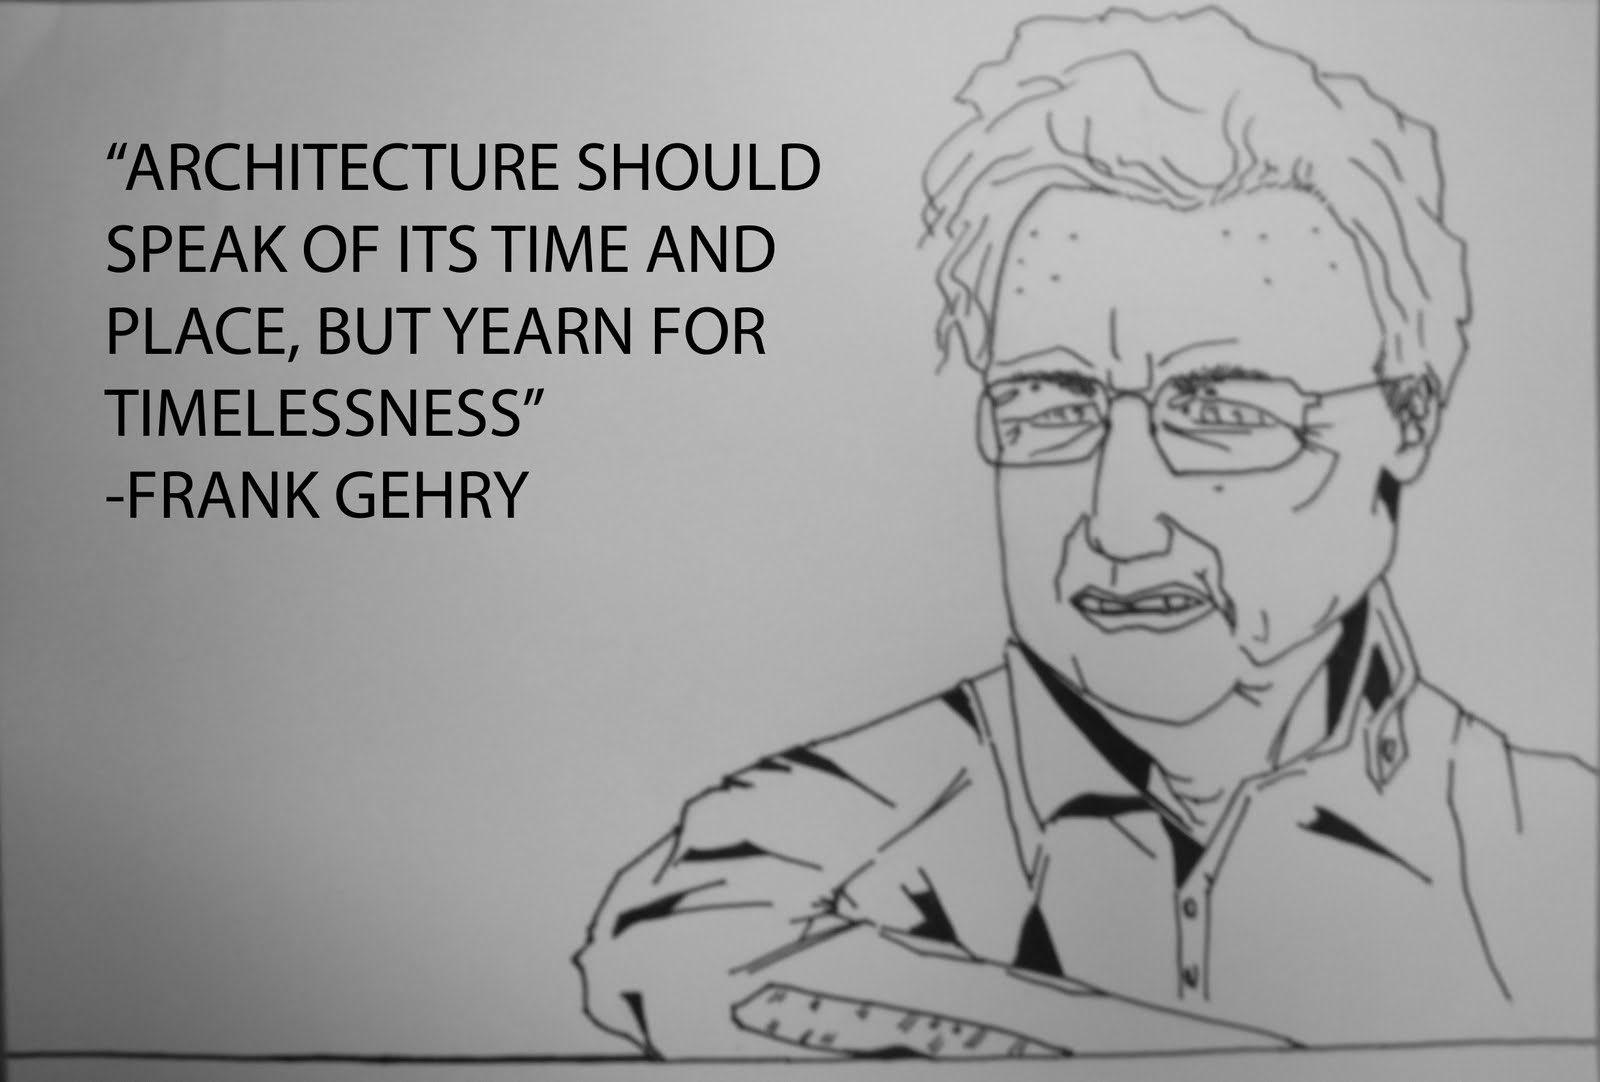 Frank Gehry's quote #2